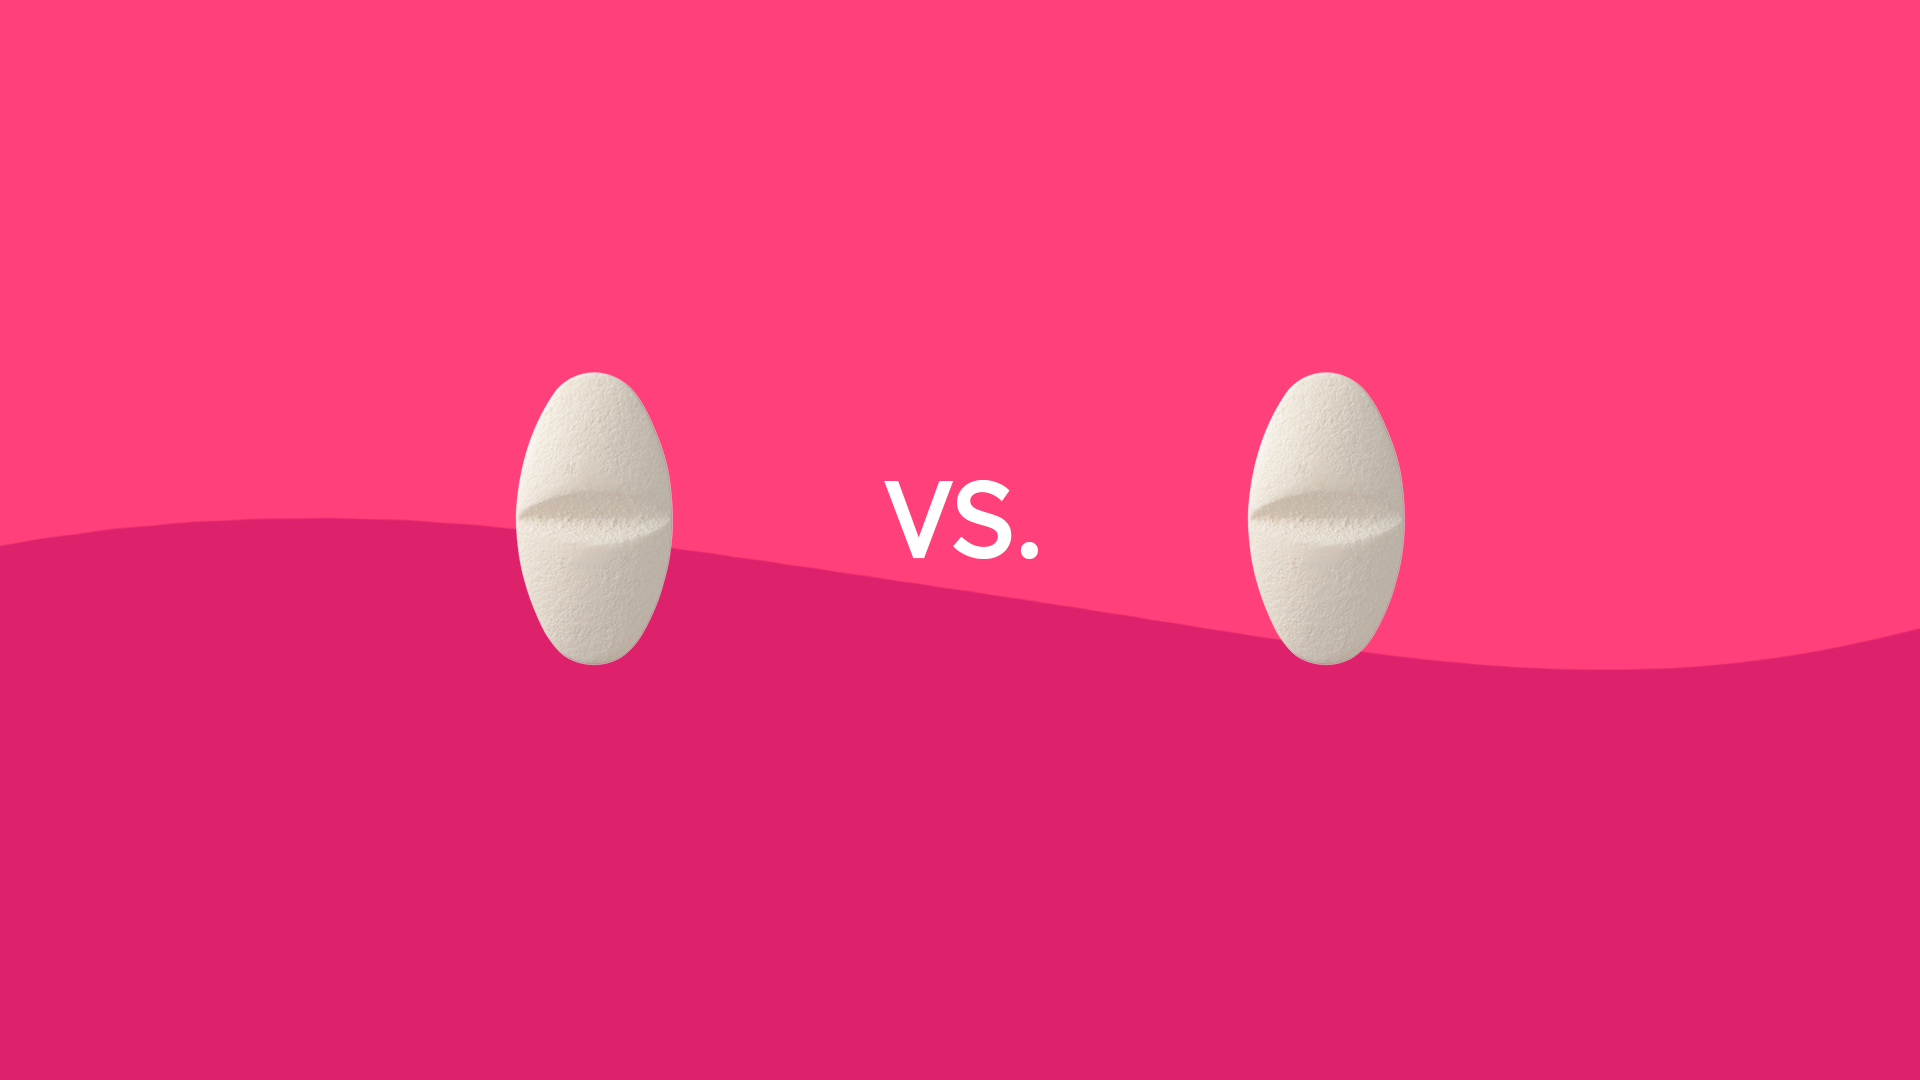 Boniva vs. Fosamax: Differences, similarities, and which is better for you